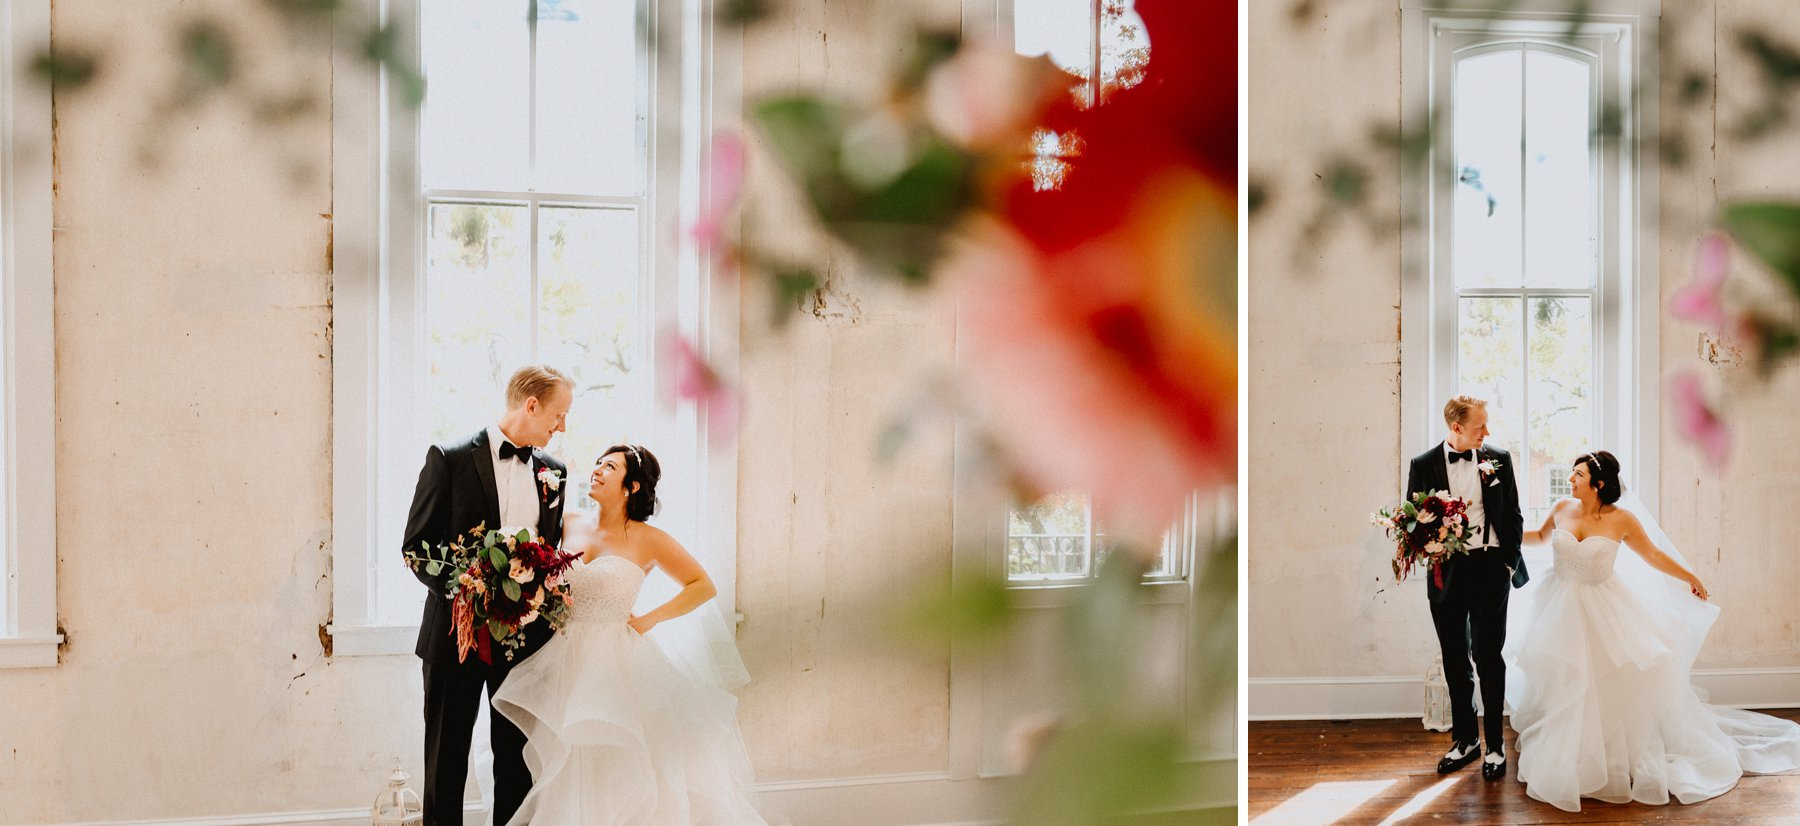 excelsior_lancaster_wedding_photographeer-021.jpg